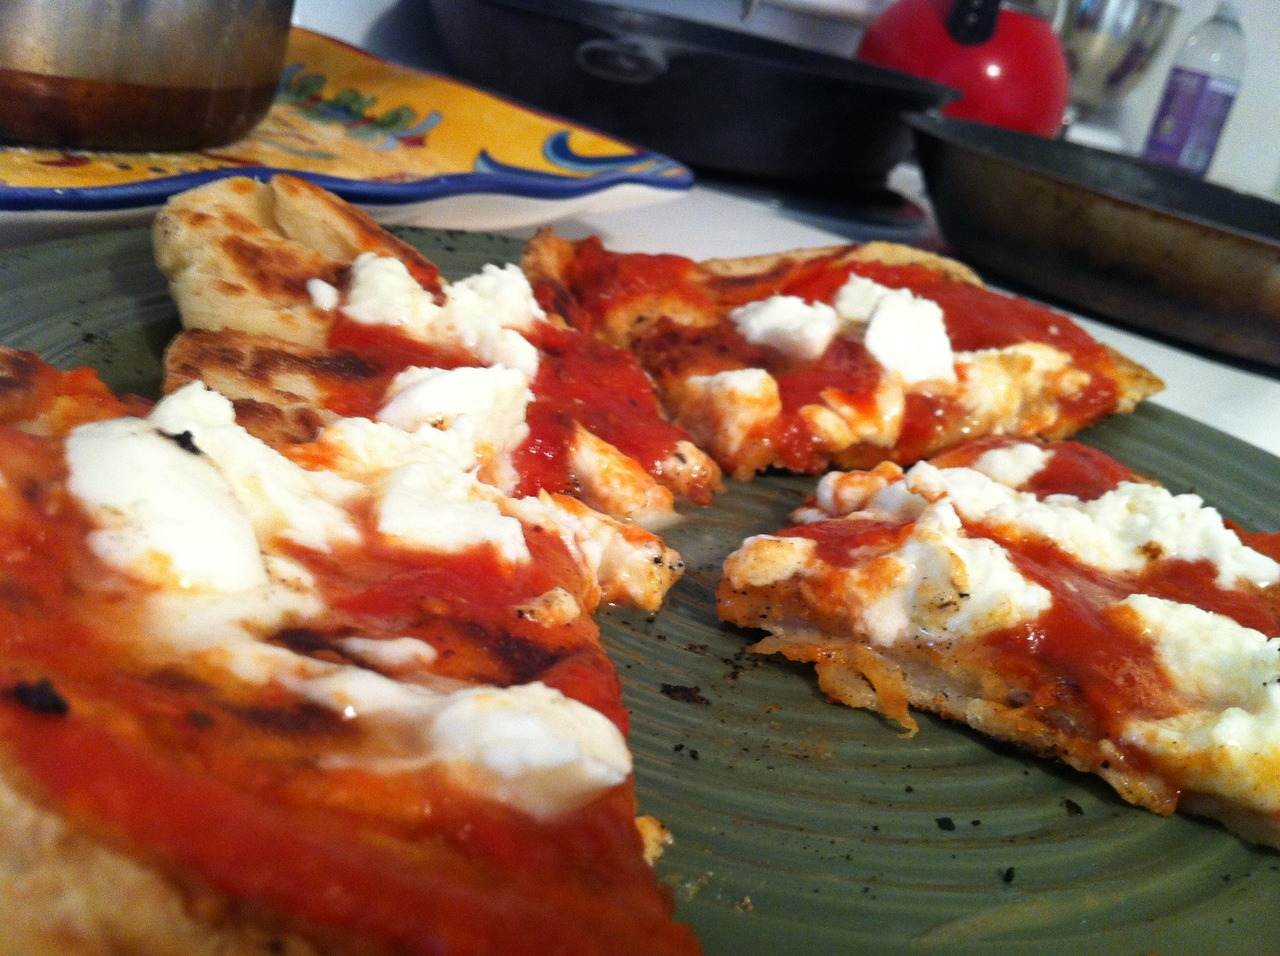 Some fried pizza I cooked up with some leftover dough. Stay tuned for a pizza play-by-play.